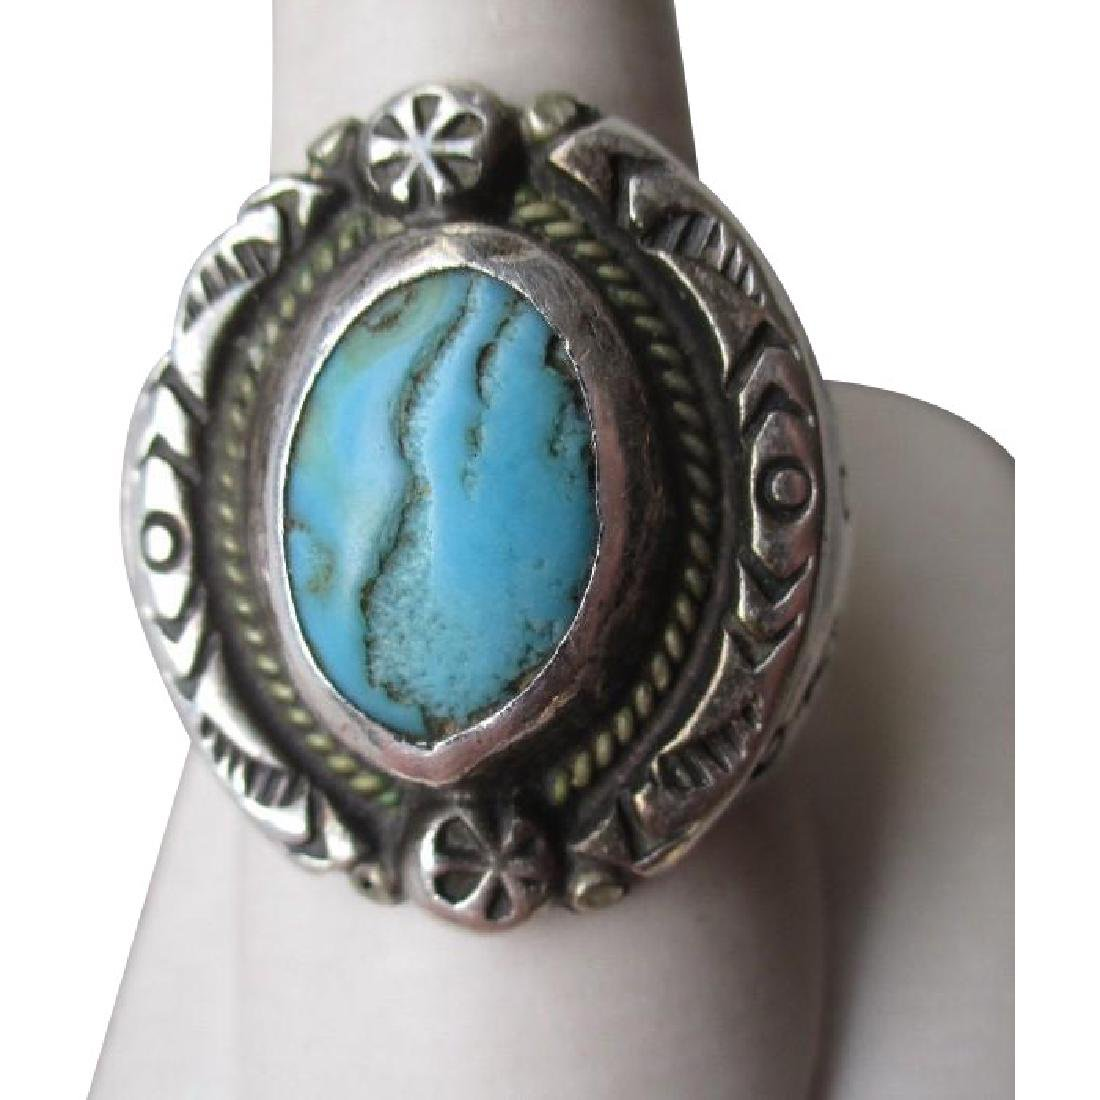 Fabulous Sterling Silver and Turquoise Men's Ring